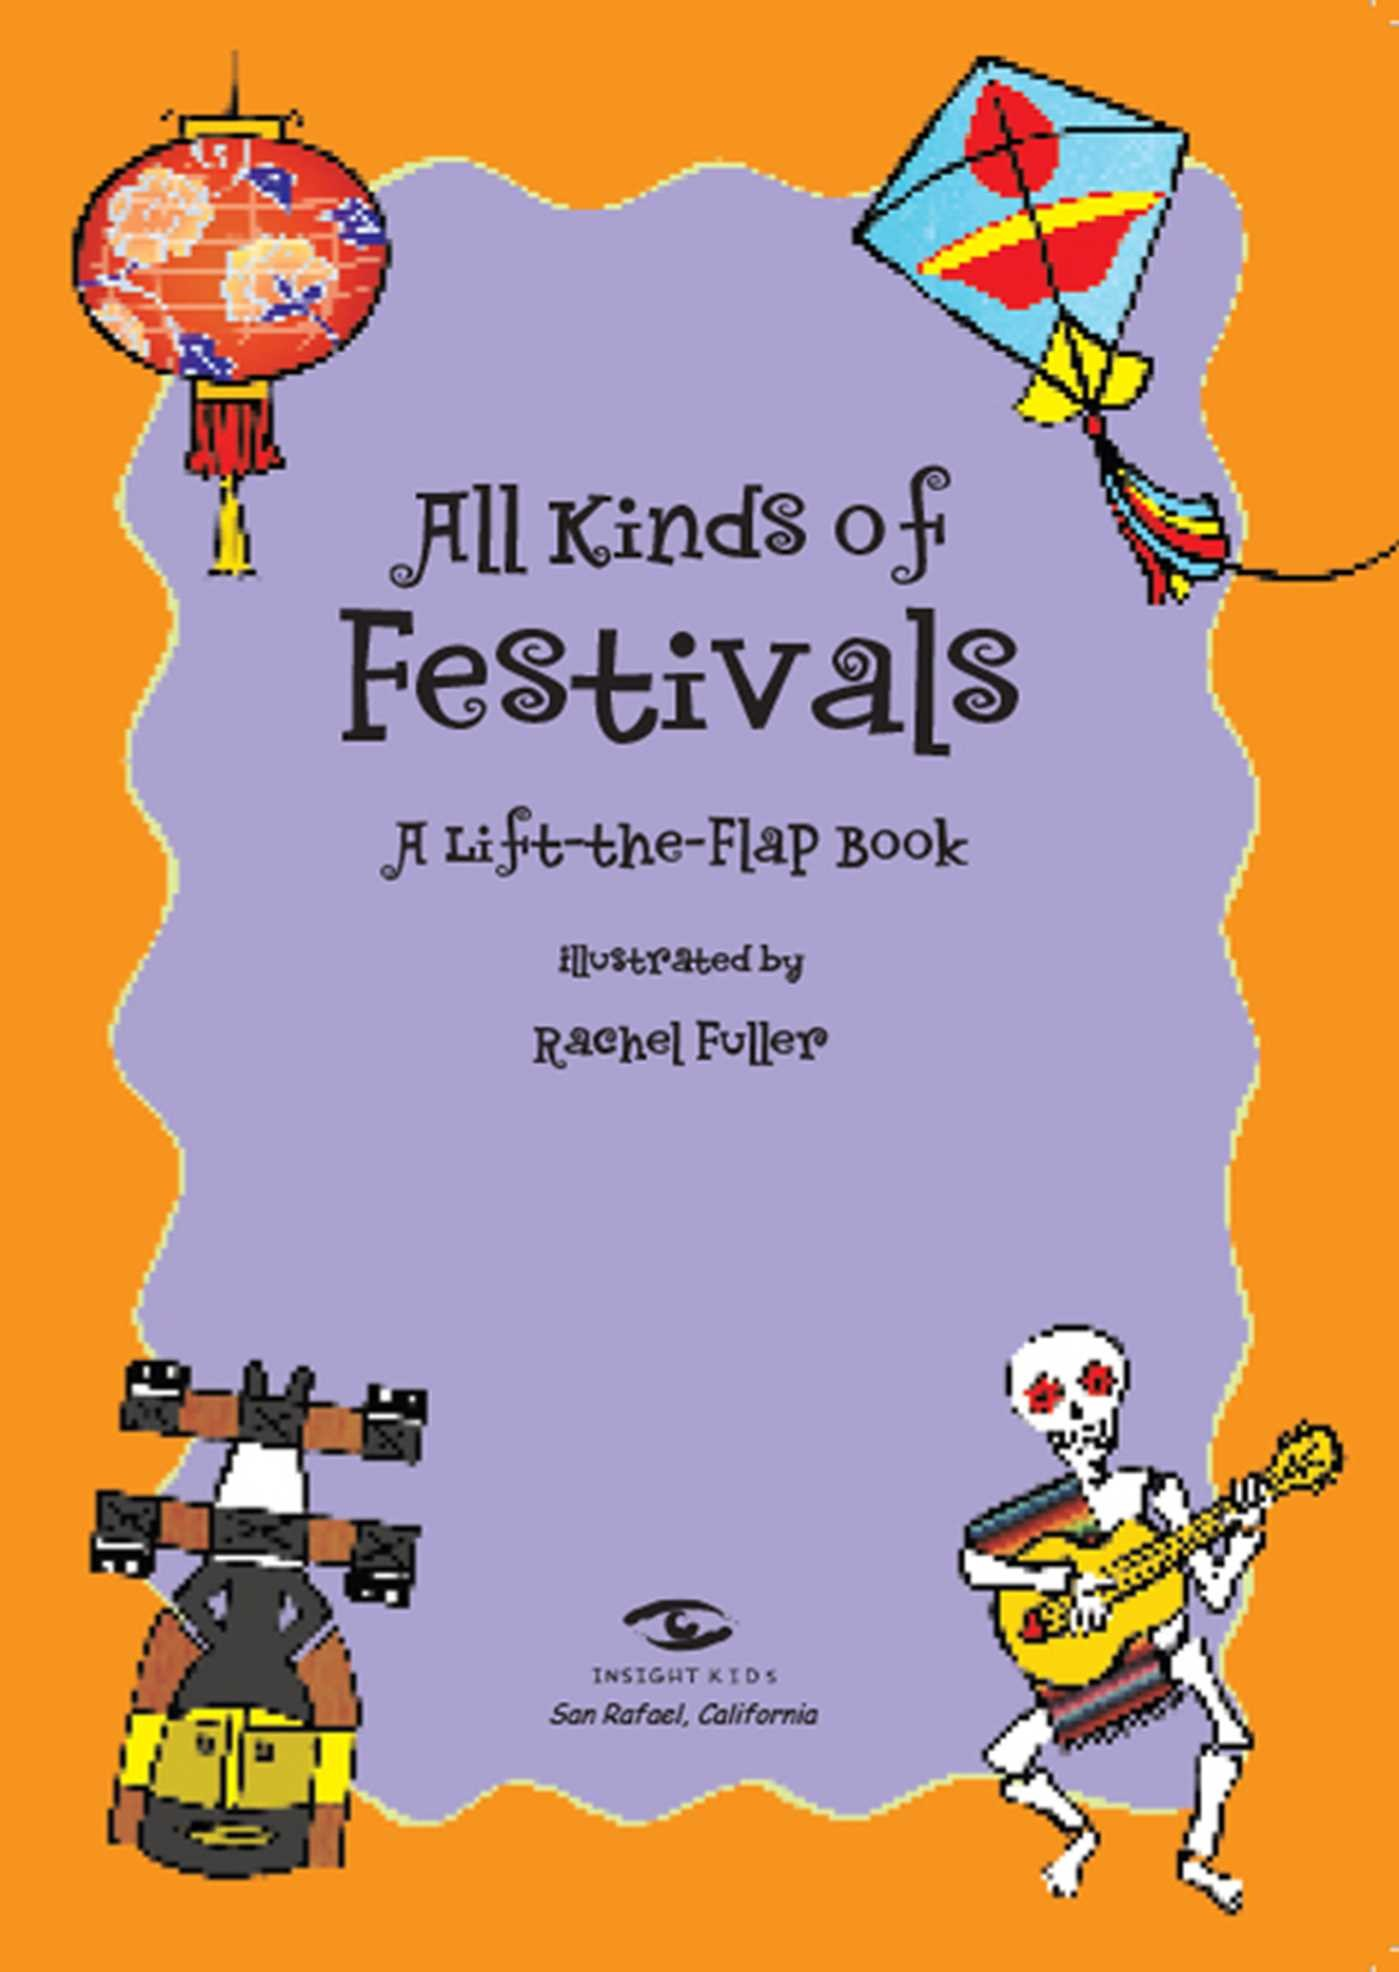 All Kinds Of Stickers: Book By Sheri Safran, Rachel